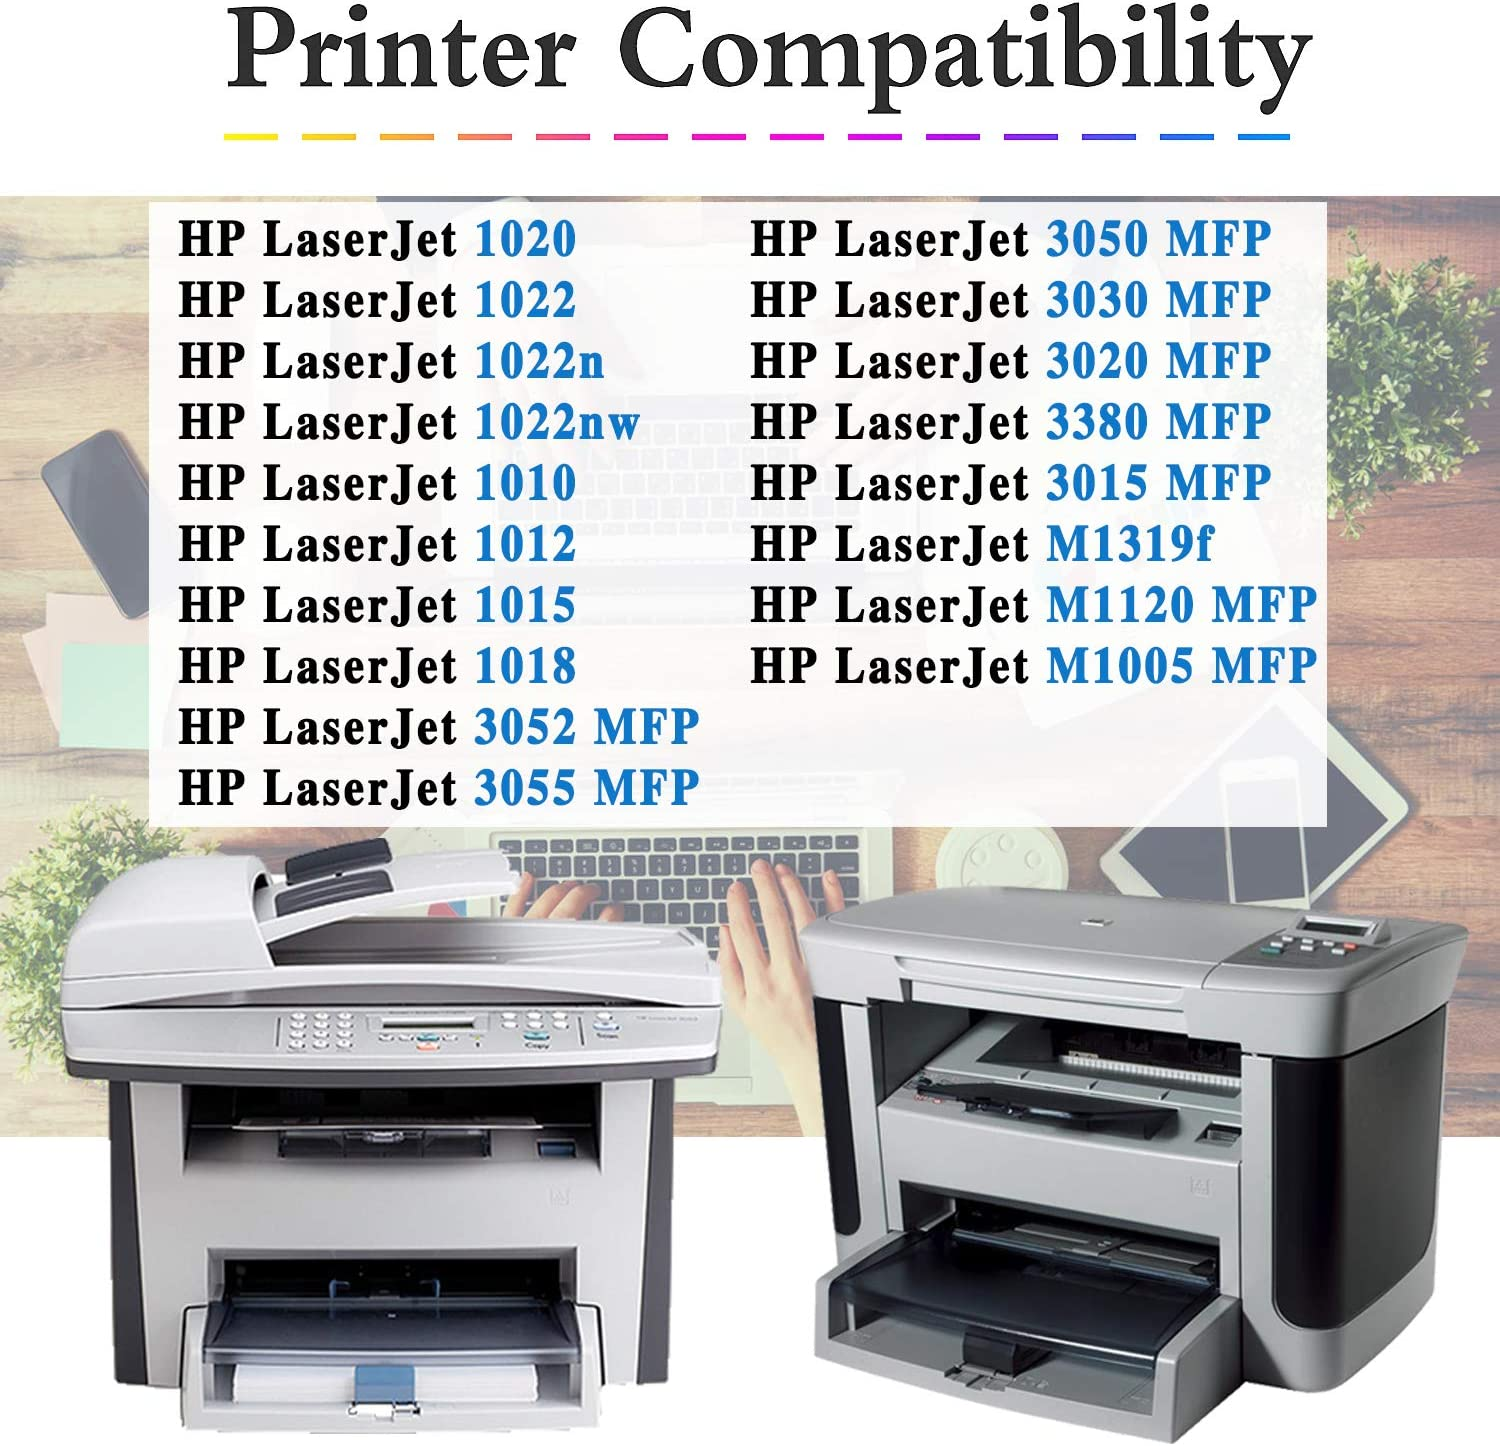 Q2612A Toner Cartridge Replacement for HP Laserjet 1020 1022n 1022nw MFP 3052 MFP 3050 MFP 3030 MFP 3020 MFP 3380 MFP 3015 MFP M1319f M1005 MFP Toner Cartridge,by TmallToner 2-Pack Black 12A